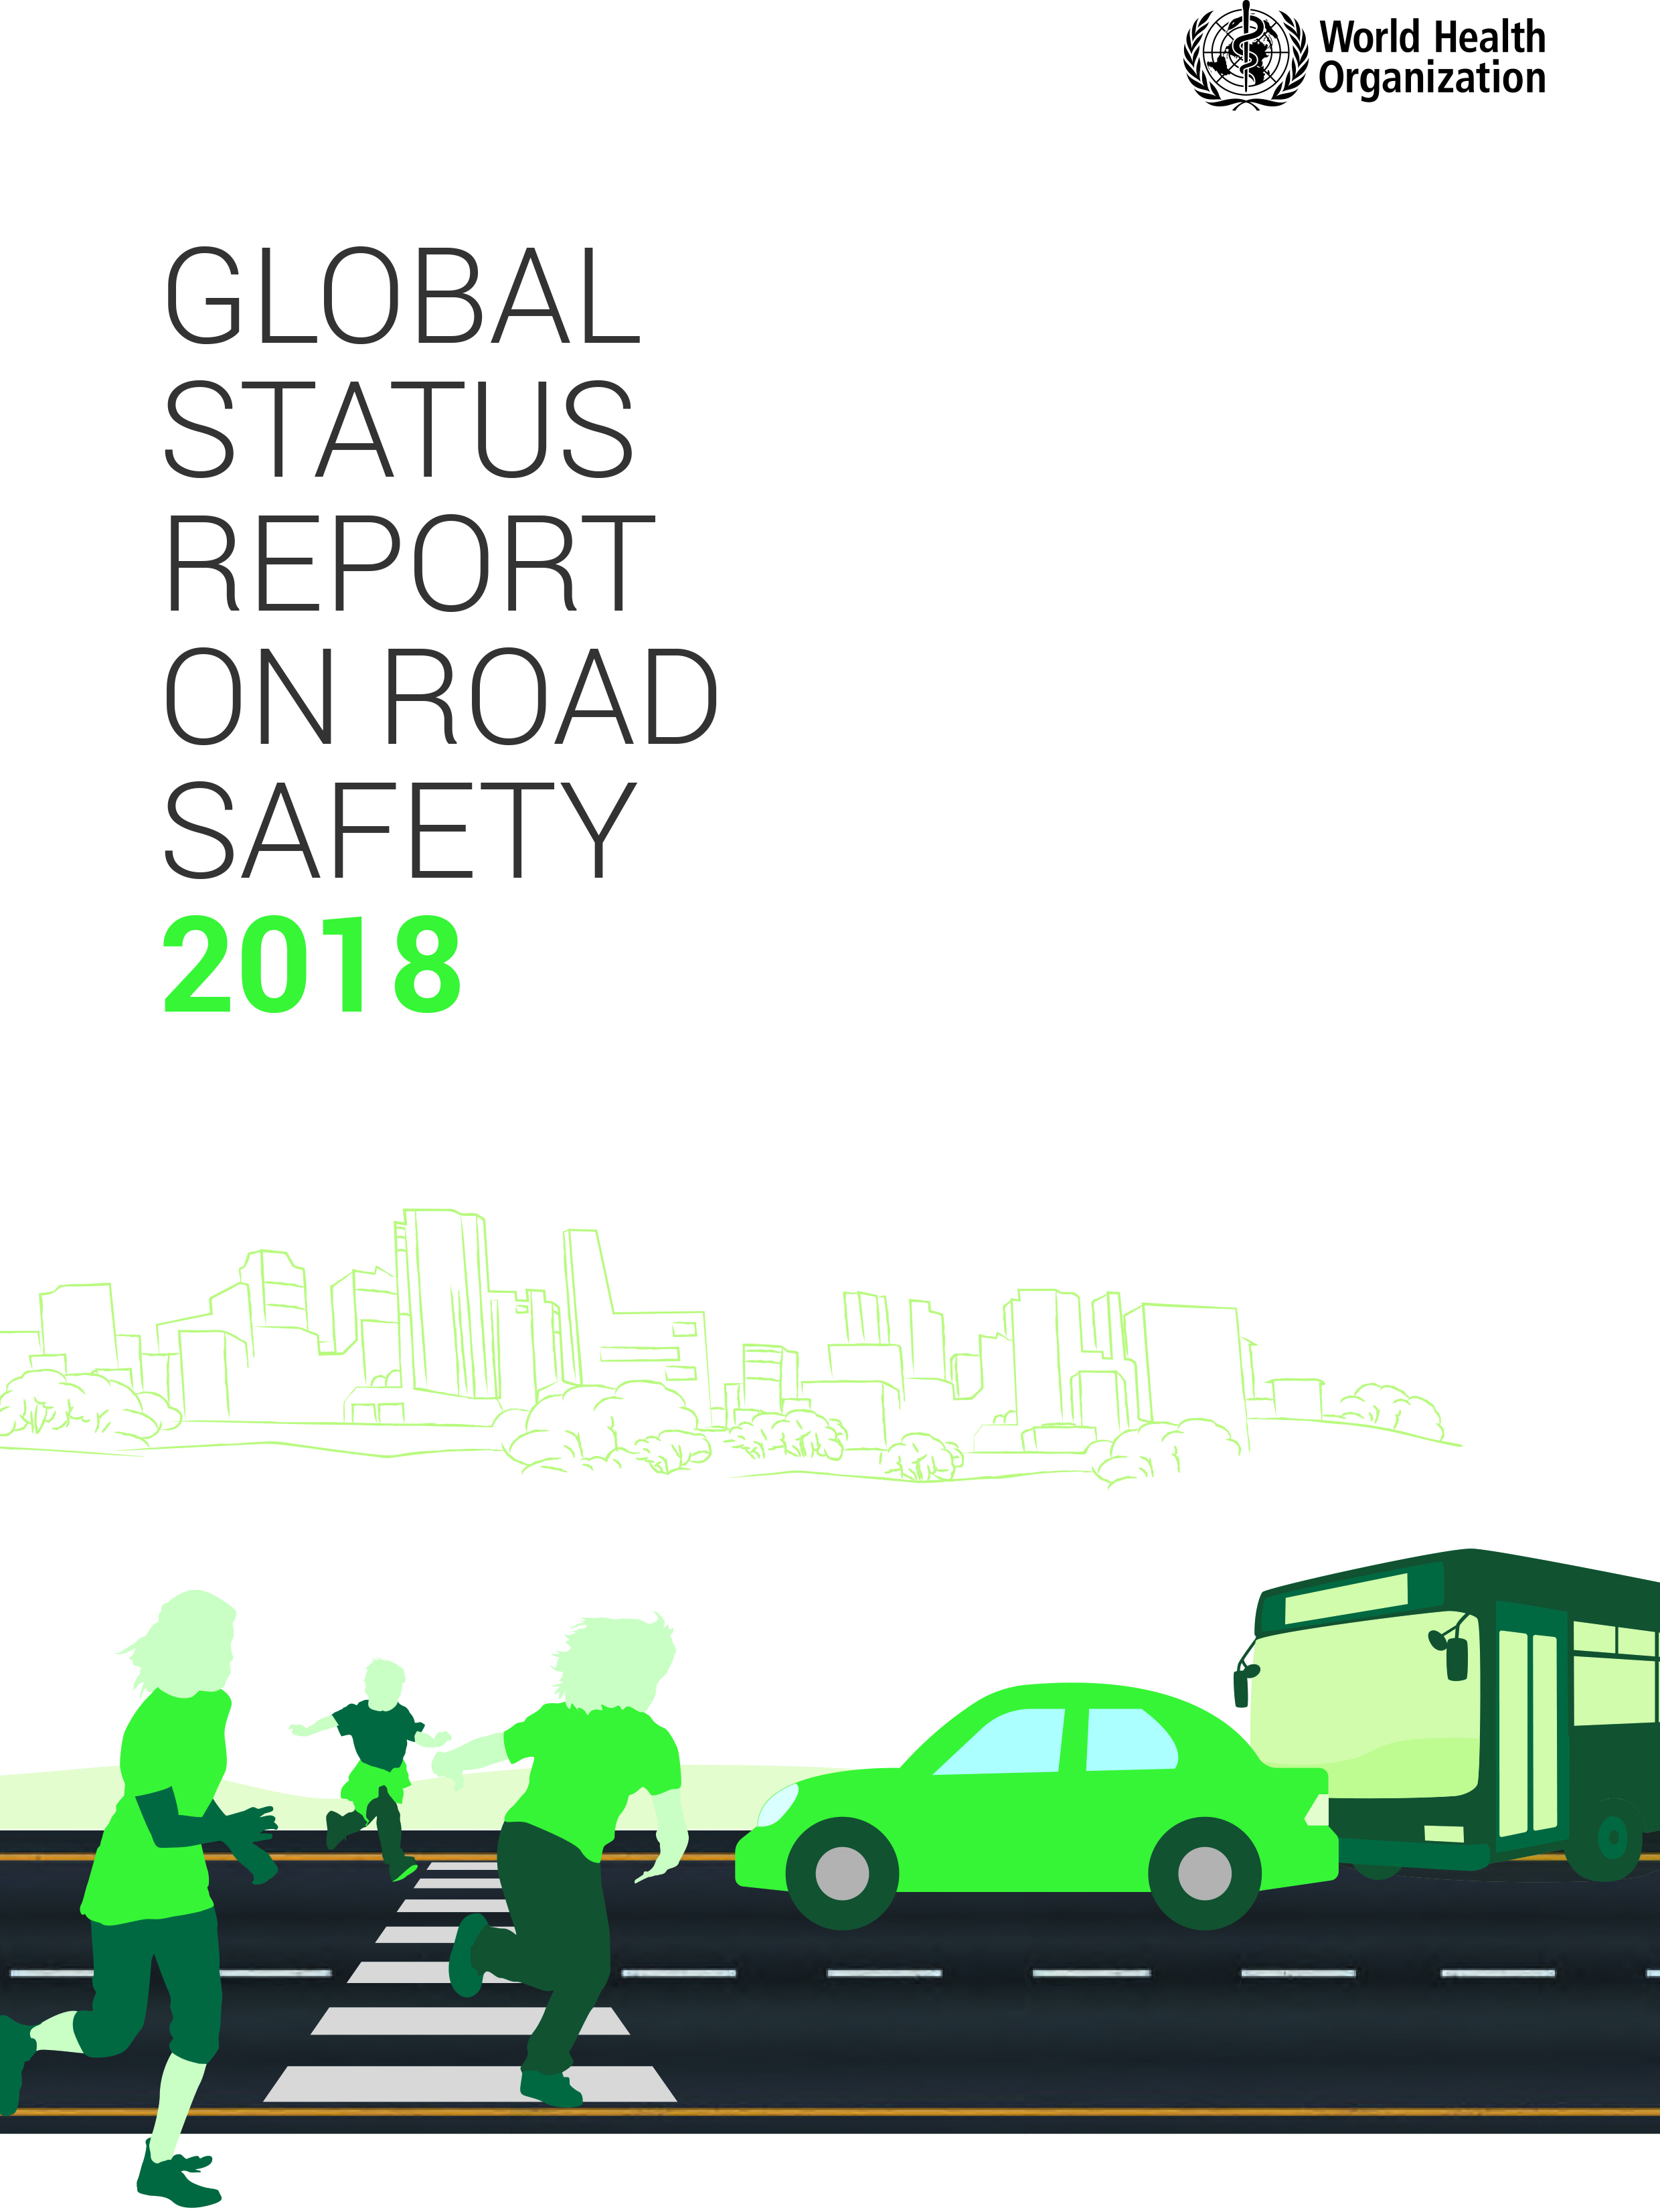 Global Status Report on Road Safety 2018,Global Status Report on Road Safety 2018,Global Status Report on Road Safety 2018